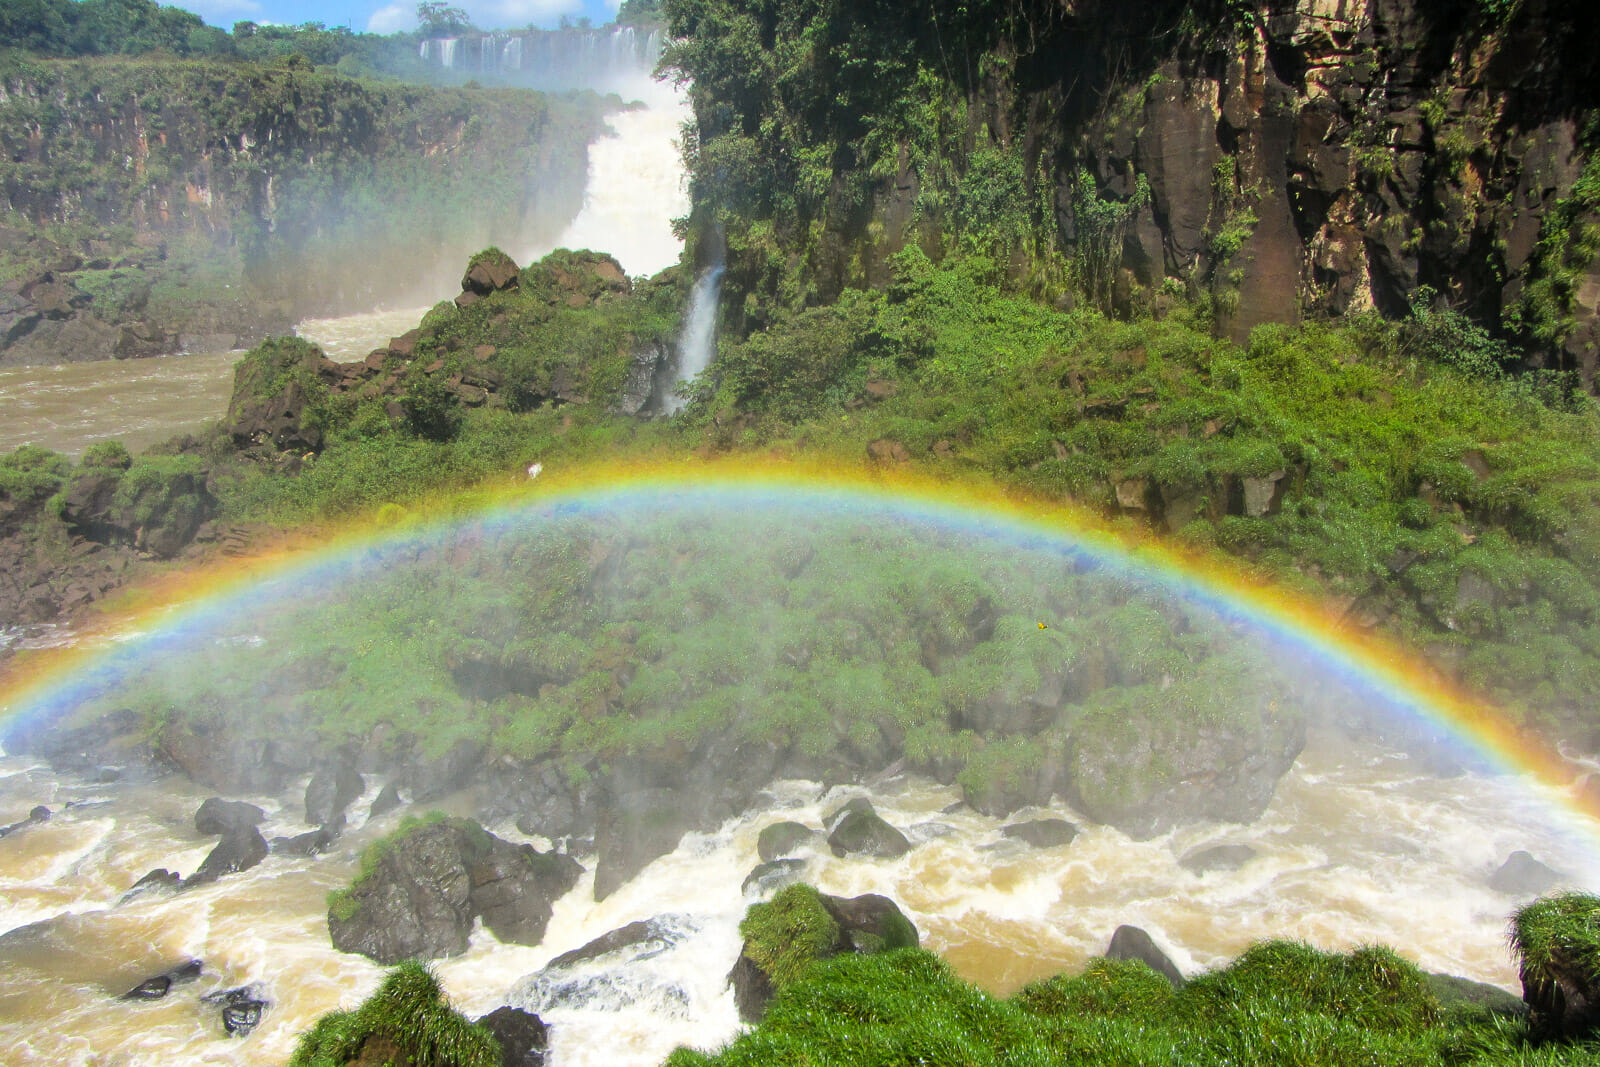 Rainbows at Argentinian side of Iguazu